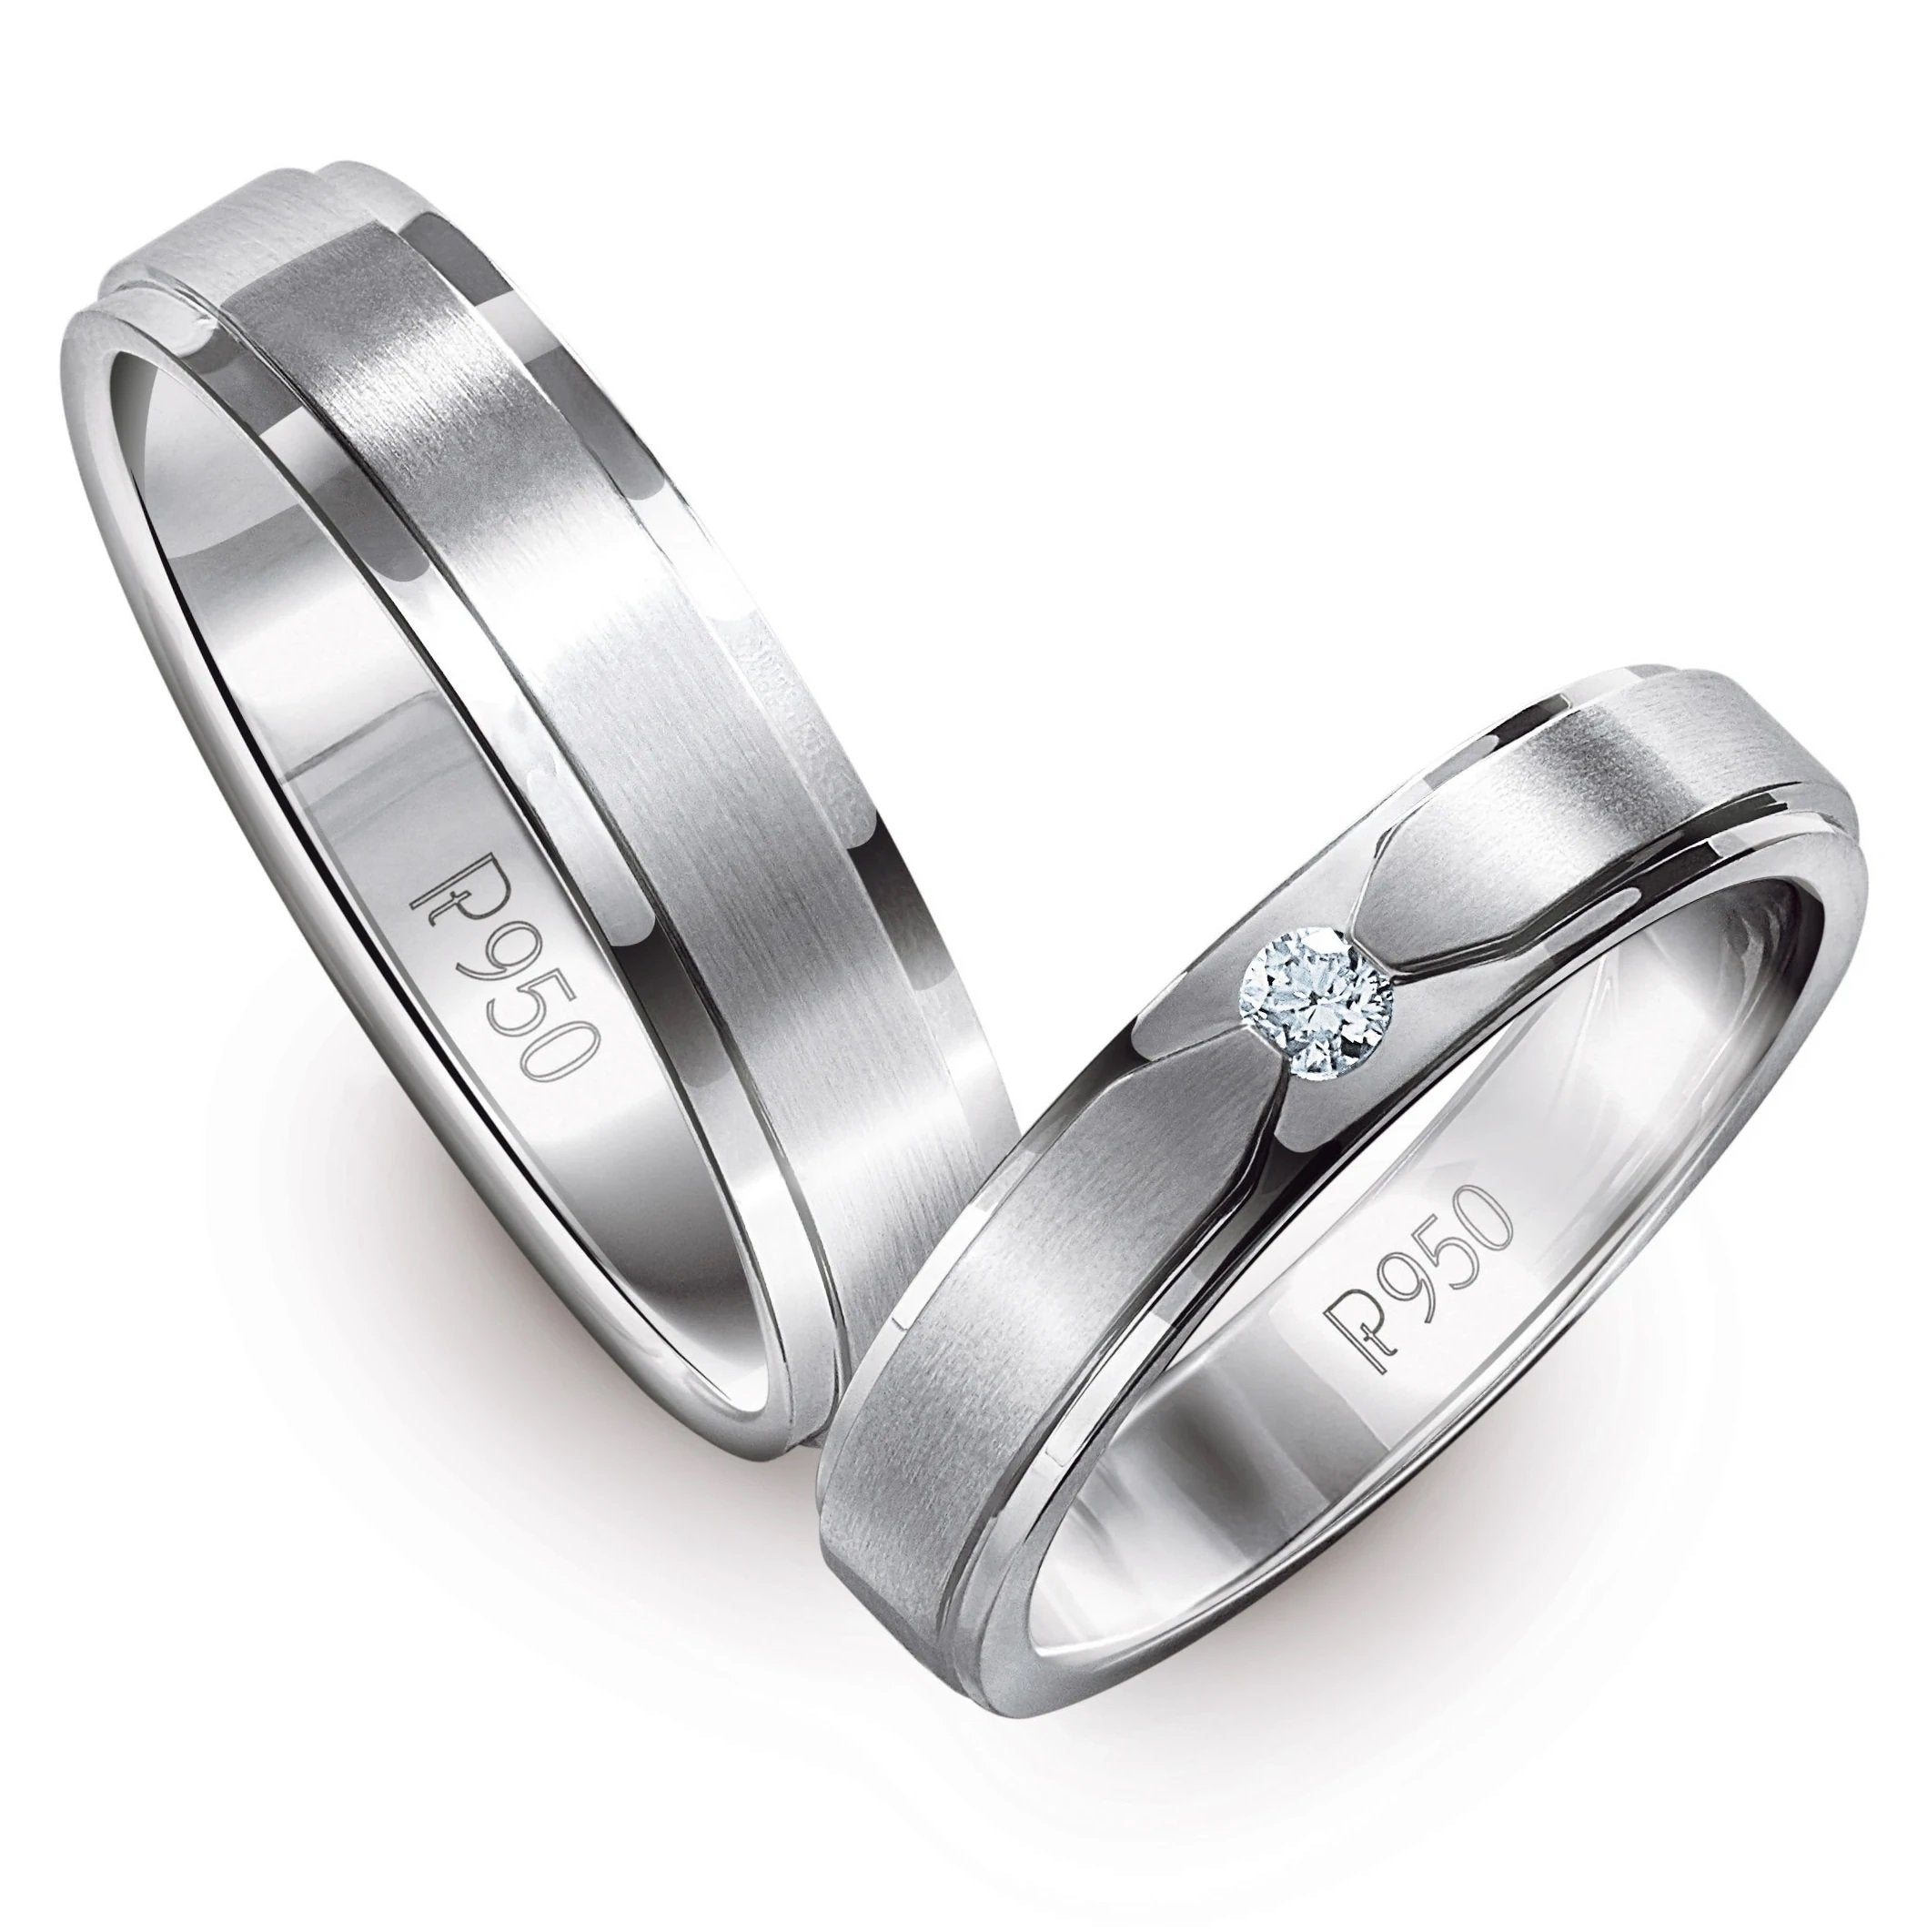 Classic Platinum Love Bands with Matte Finish JL PT 529 Men's Ring is Plain Platinum and Women's Ring Has Single Diamond of 0.05 cts. Both the rings have significant matte finish.